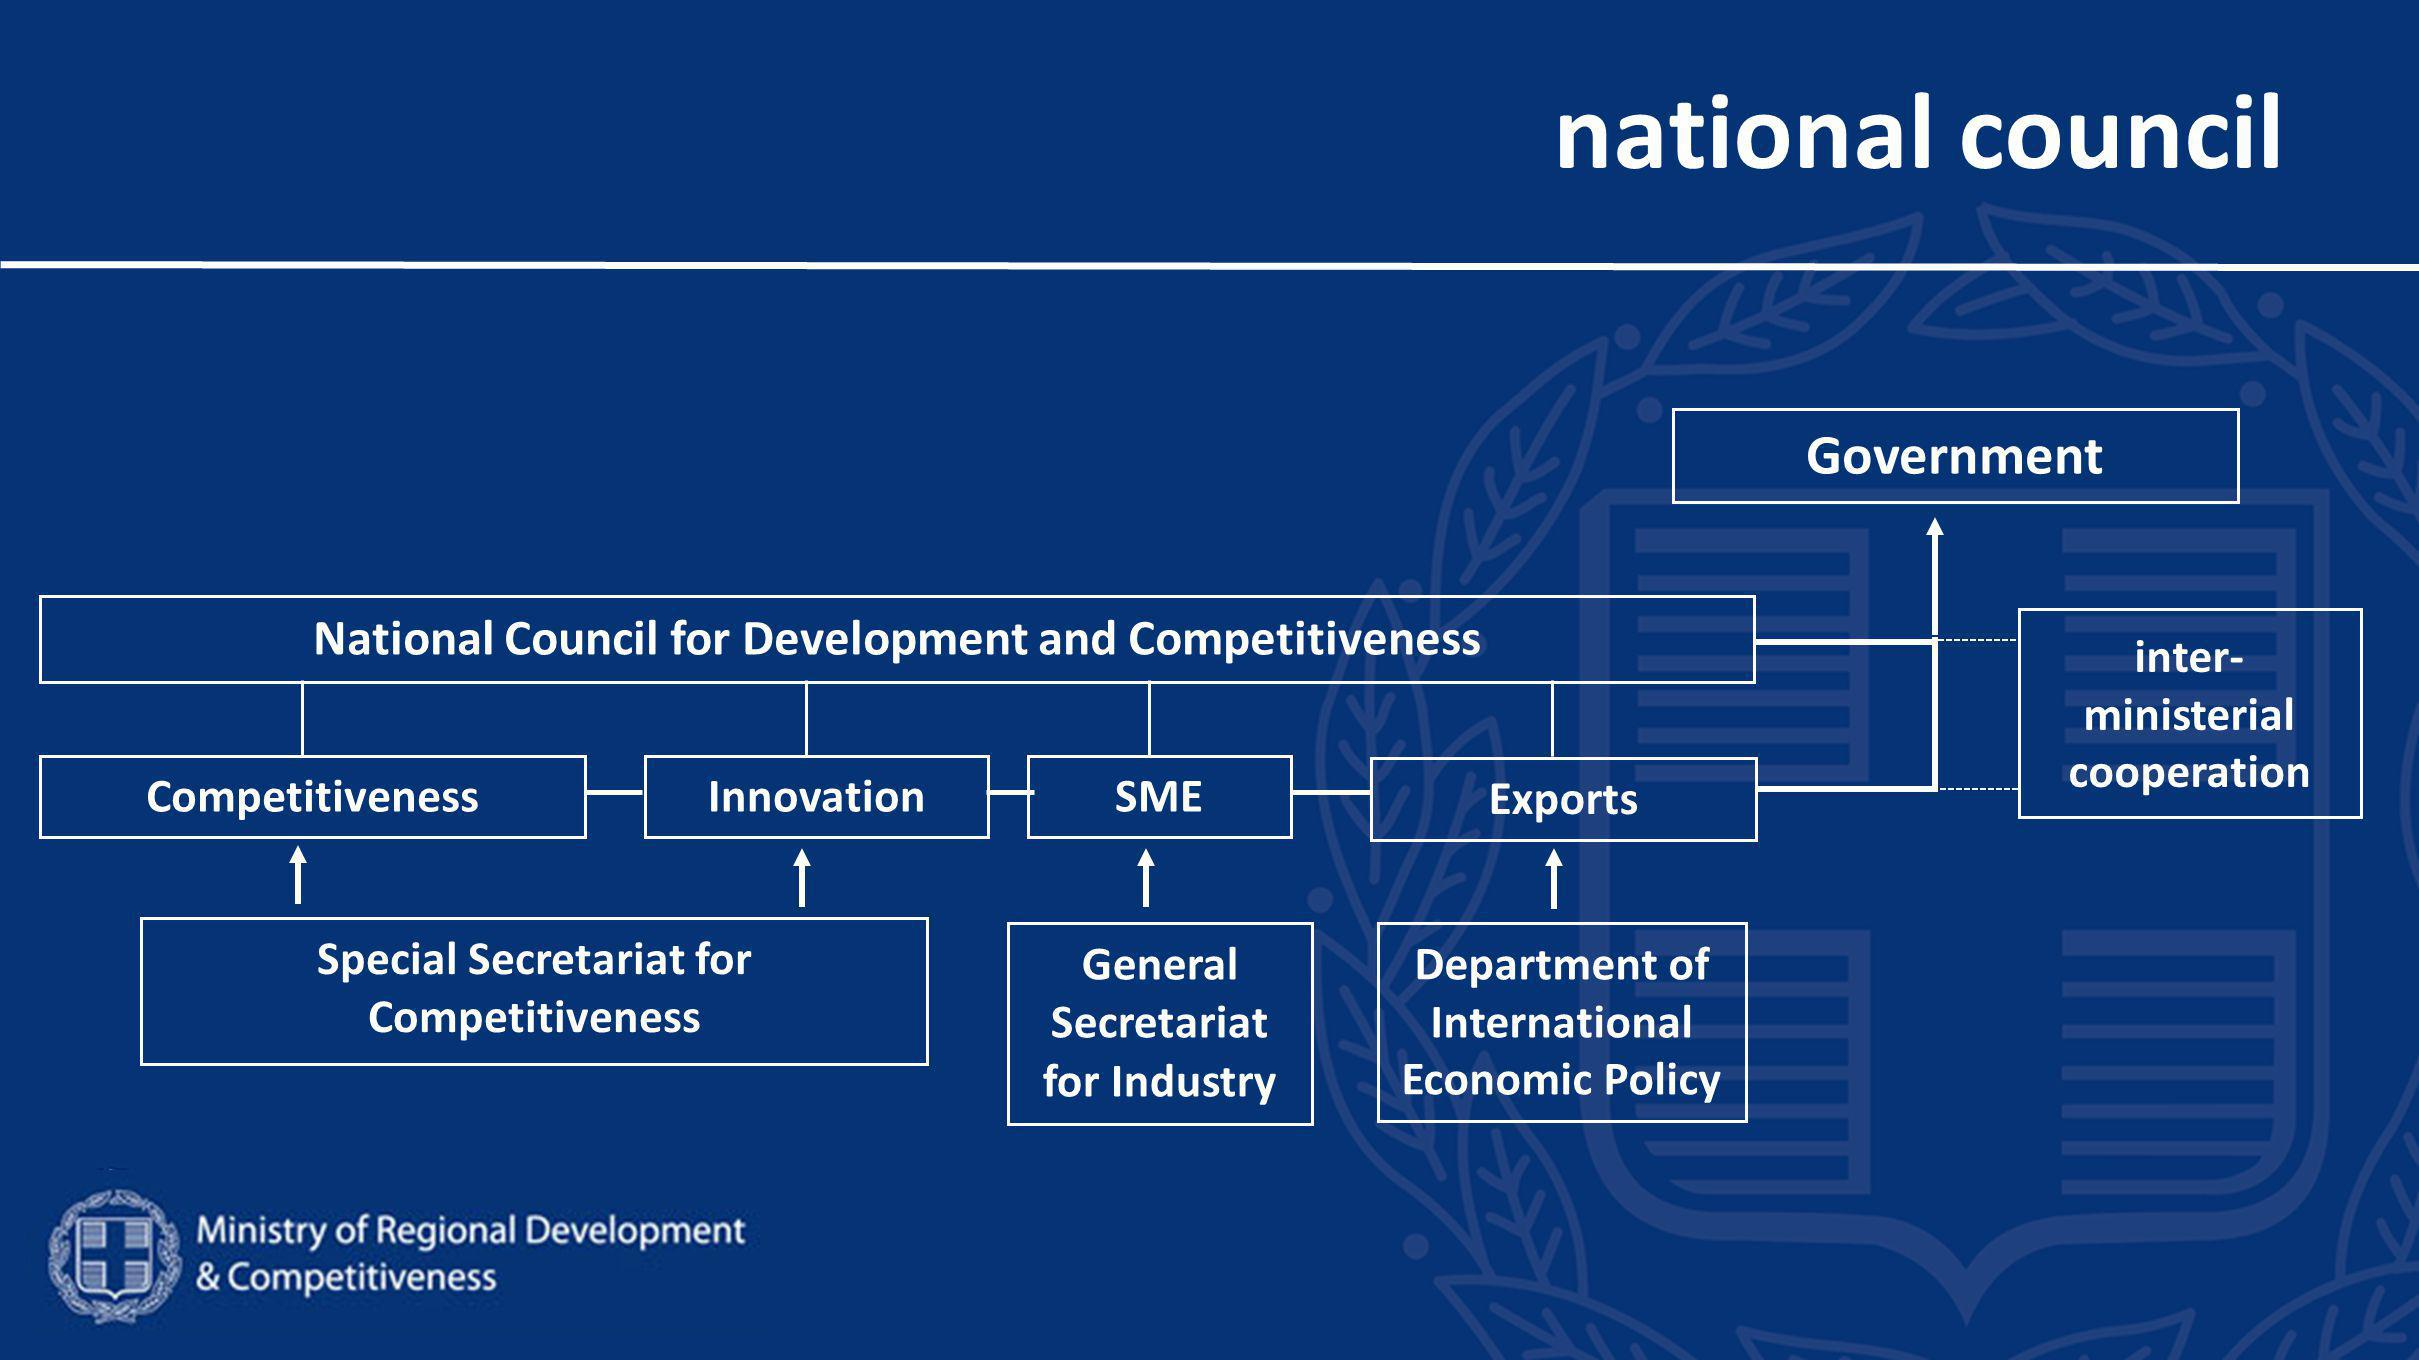 national council National Council for Development and Competitiveness Innovation Exports SME Department of International Economic Policy Government inter- ministerial cooperation Competitiveness General Secretariat for Industry Special Secretariat for Competitiveness